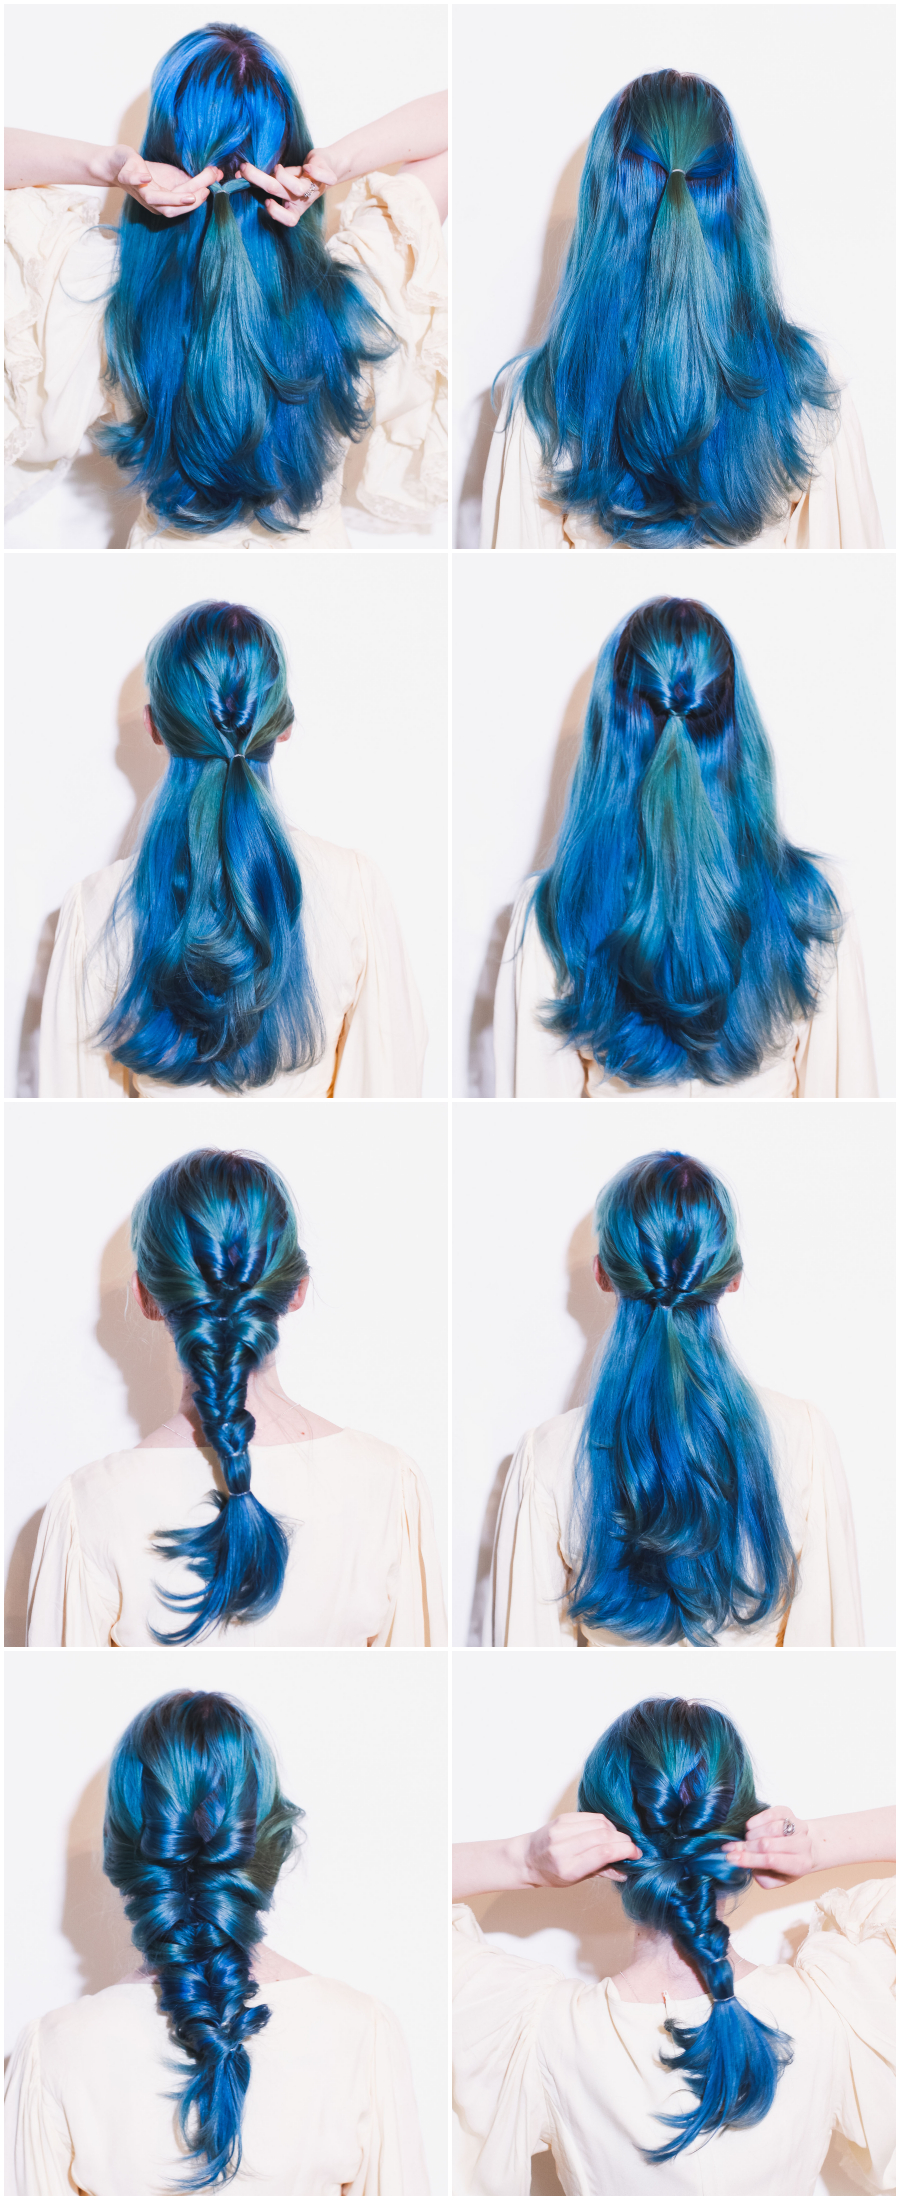 Hair Styles, Mermaid Braid Throughout Most Recent Messy Mermaid Braid Hairstyles (View 14 of 20)